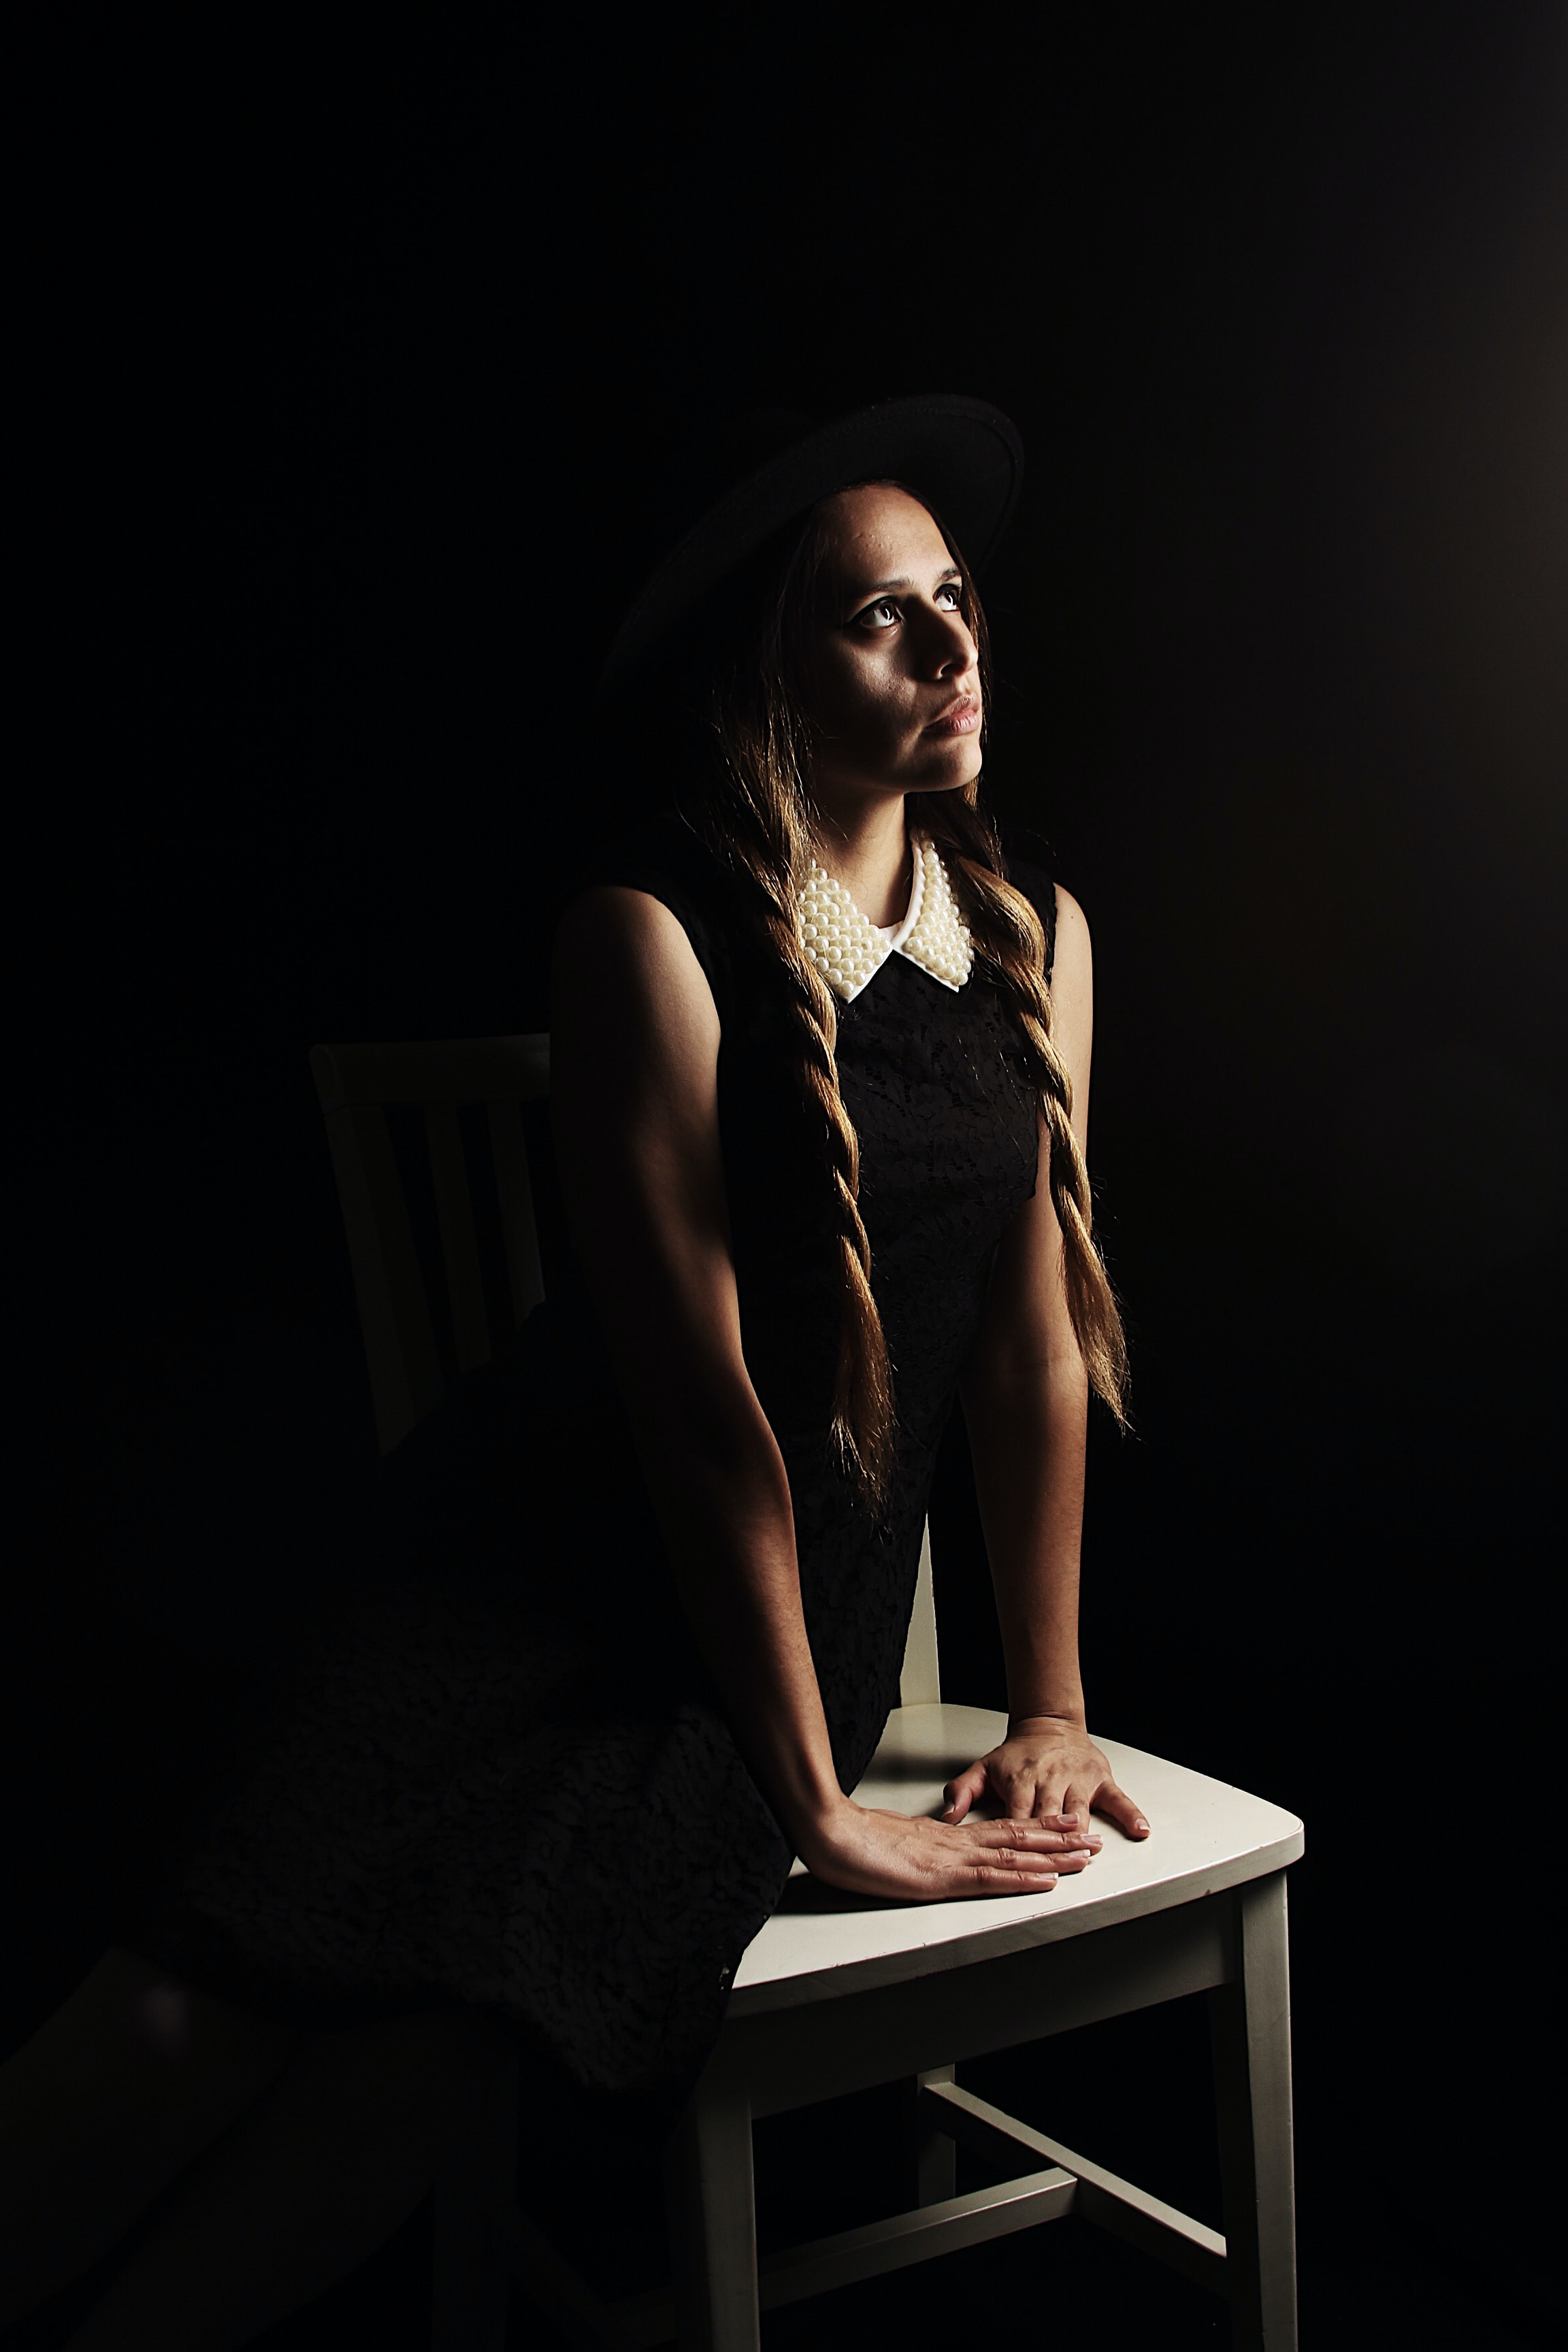 woman looking up sitting on white wooden chair